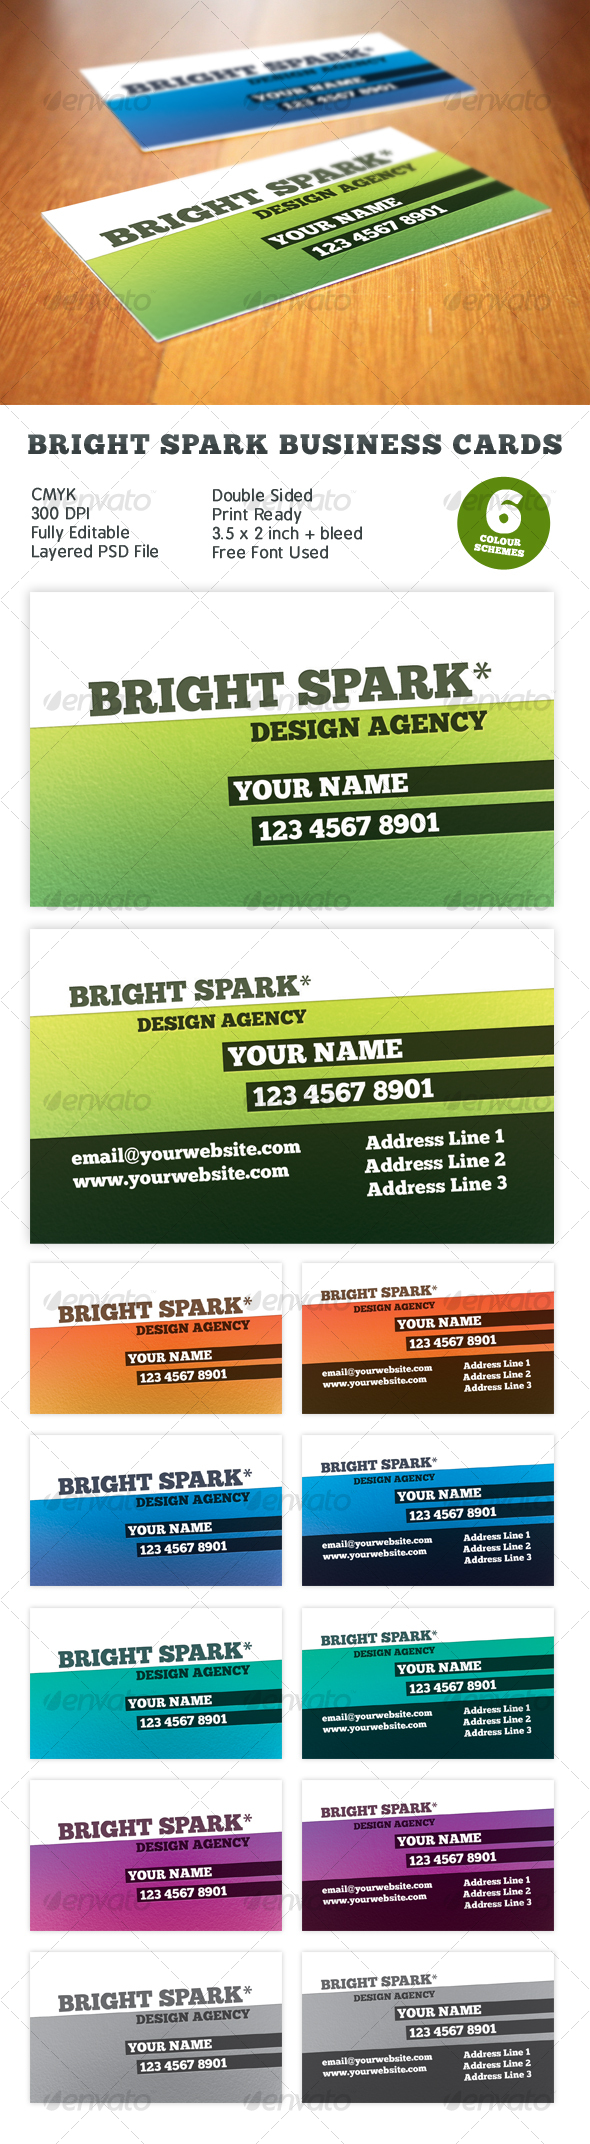 Bright Spark Print Ready Business Card - Creative Business Cards